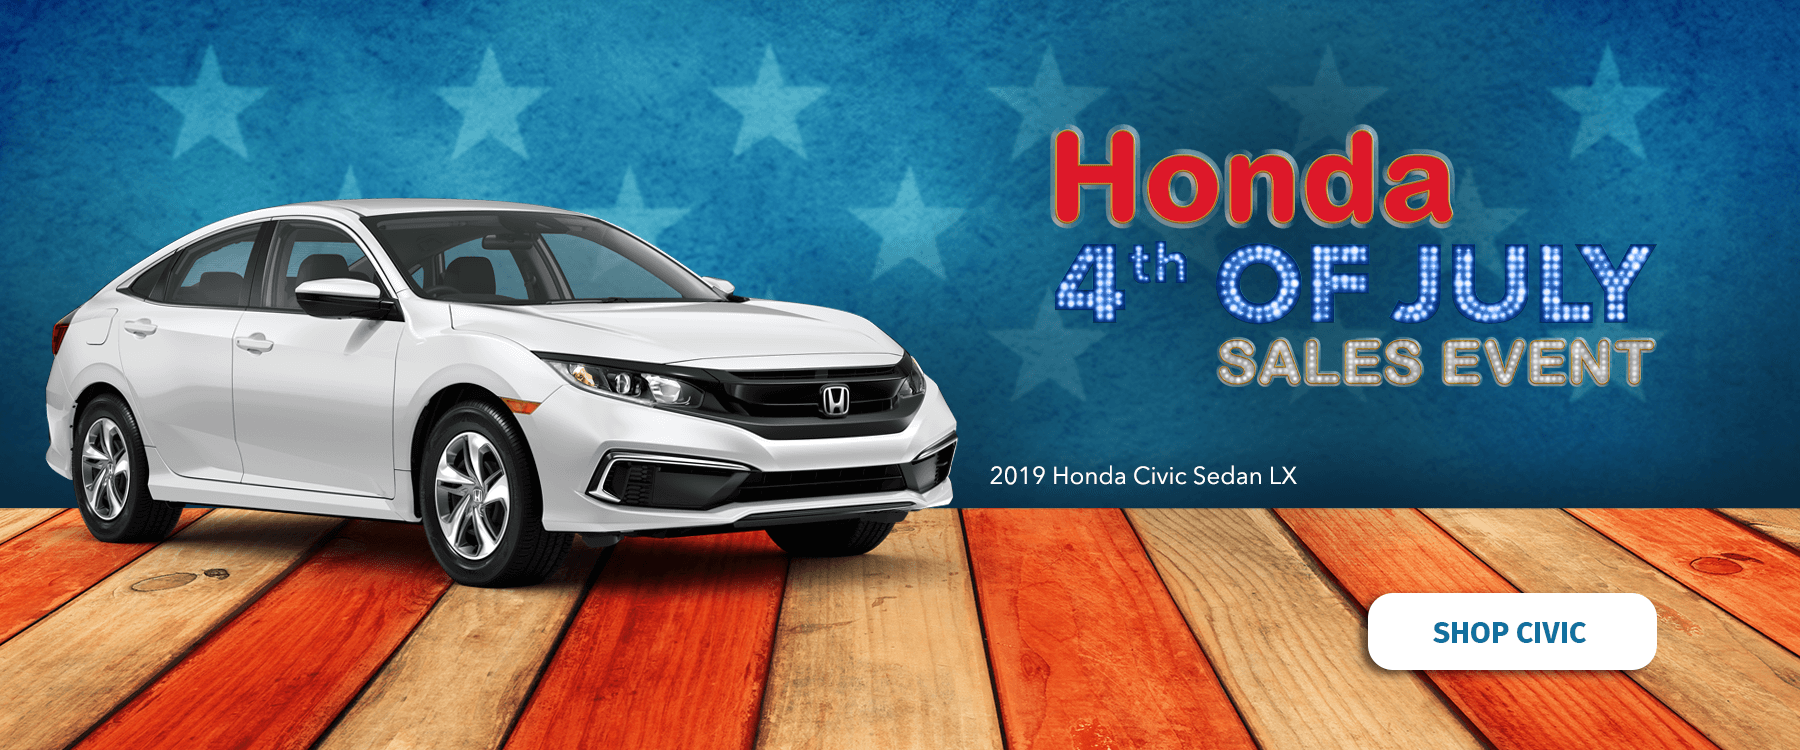 Honda 4th of July Sales Event 2019 Civic Sedan Slider